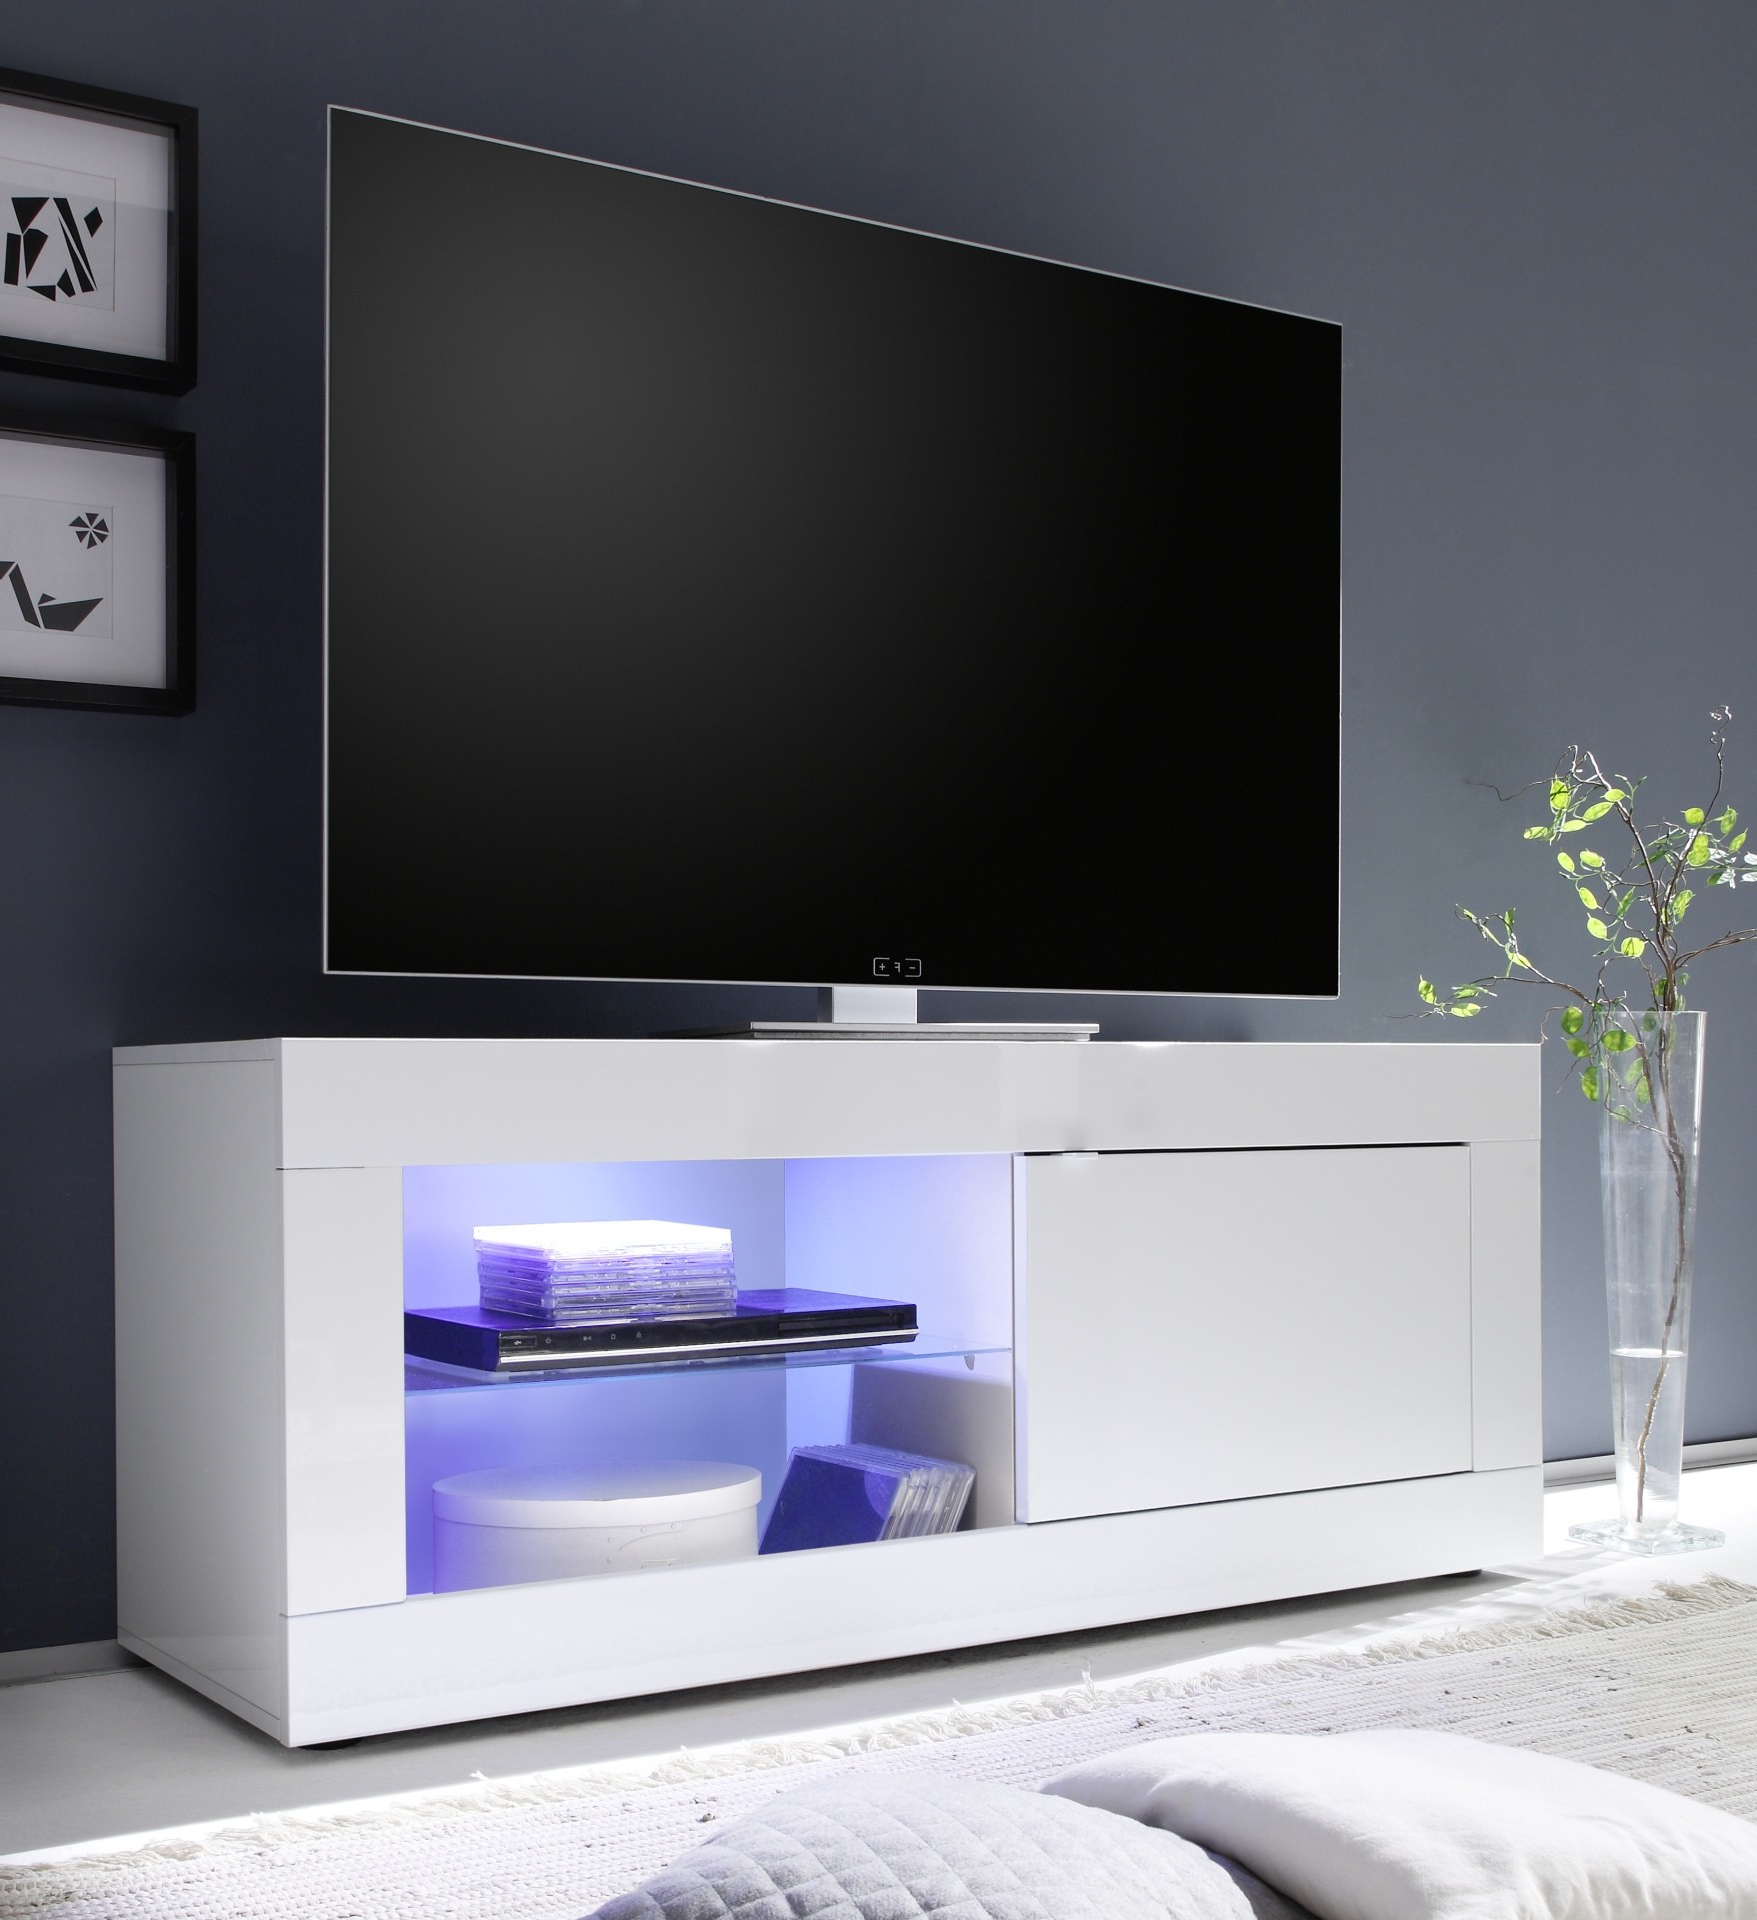 Modern White Gloss Tv Stands Intended For Recent Avanti Ii Gloss Tv Stand With Rgb Lights – Tv Stands (533) – Sena (View 12 of 20)